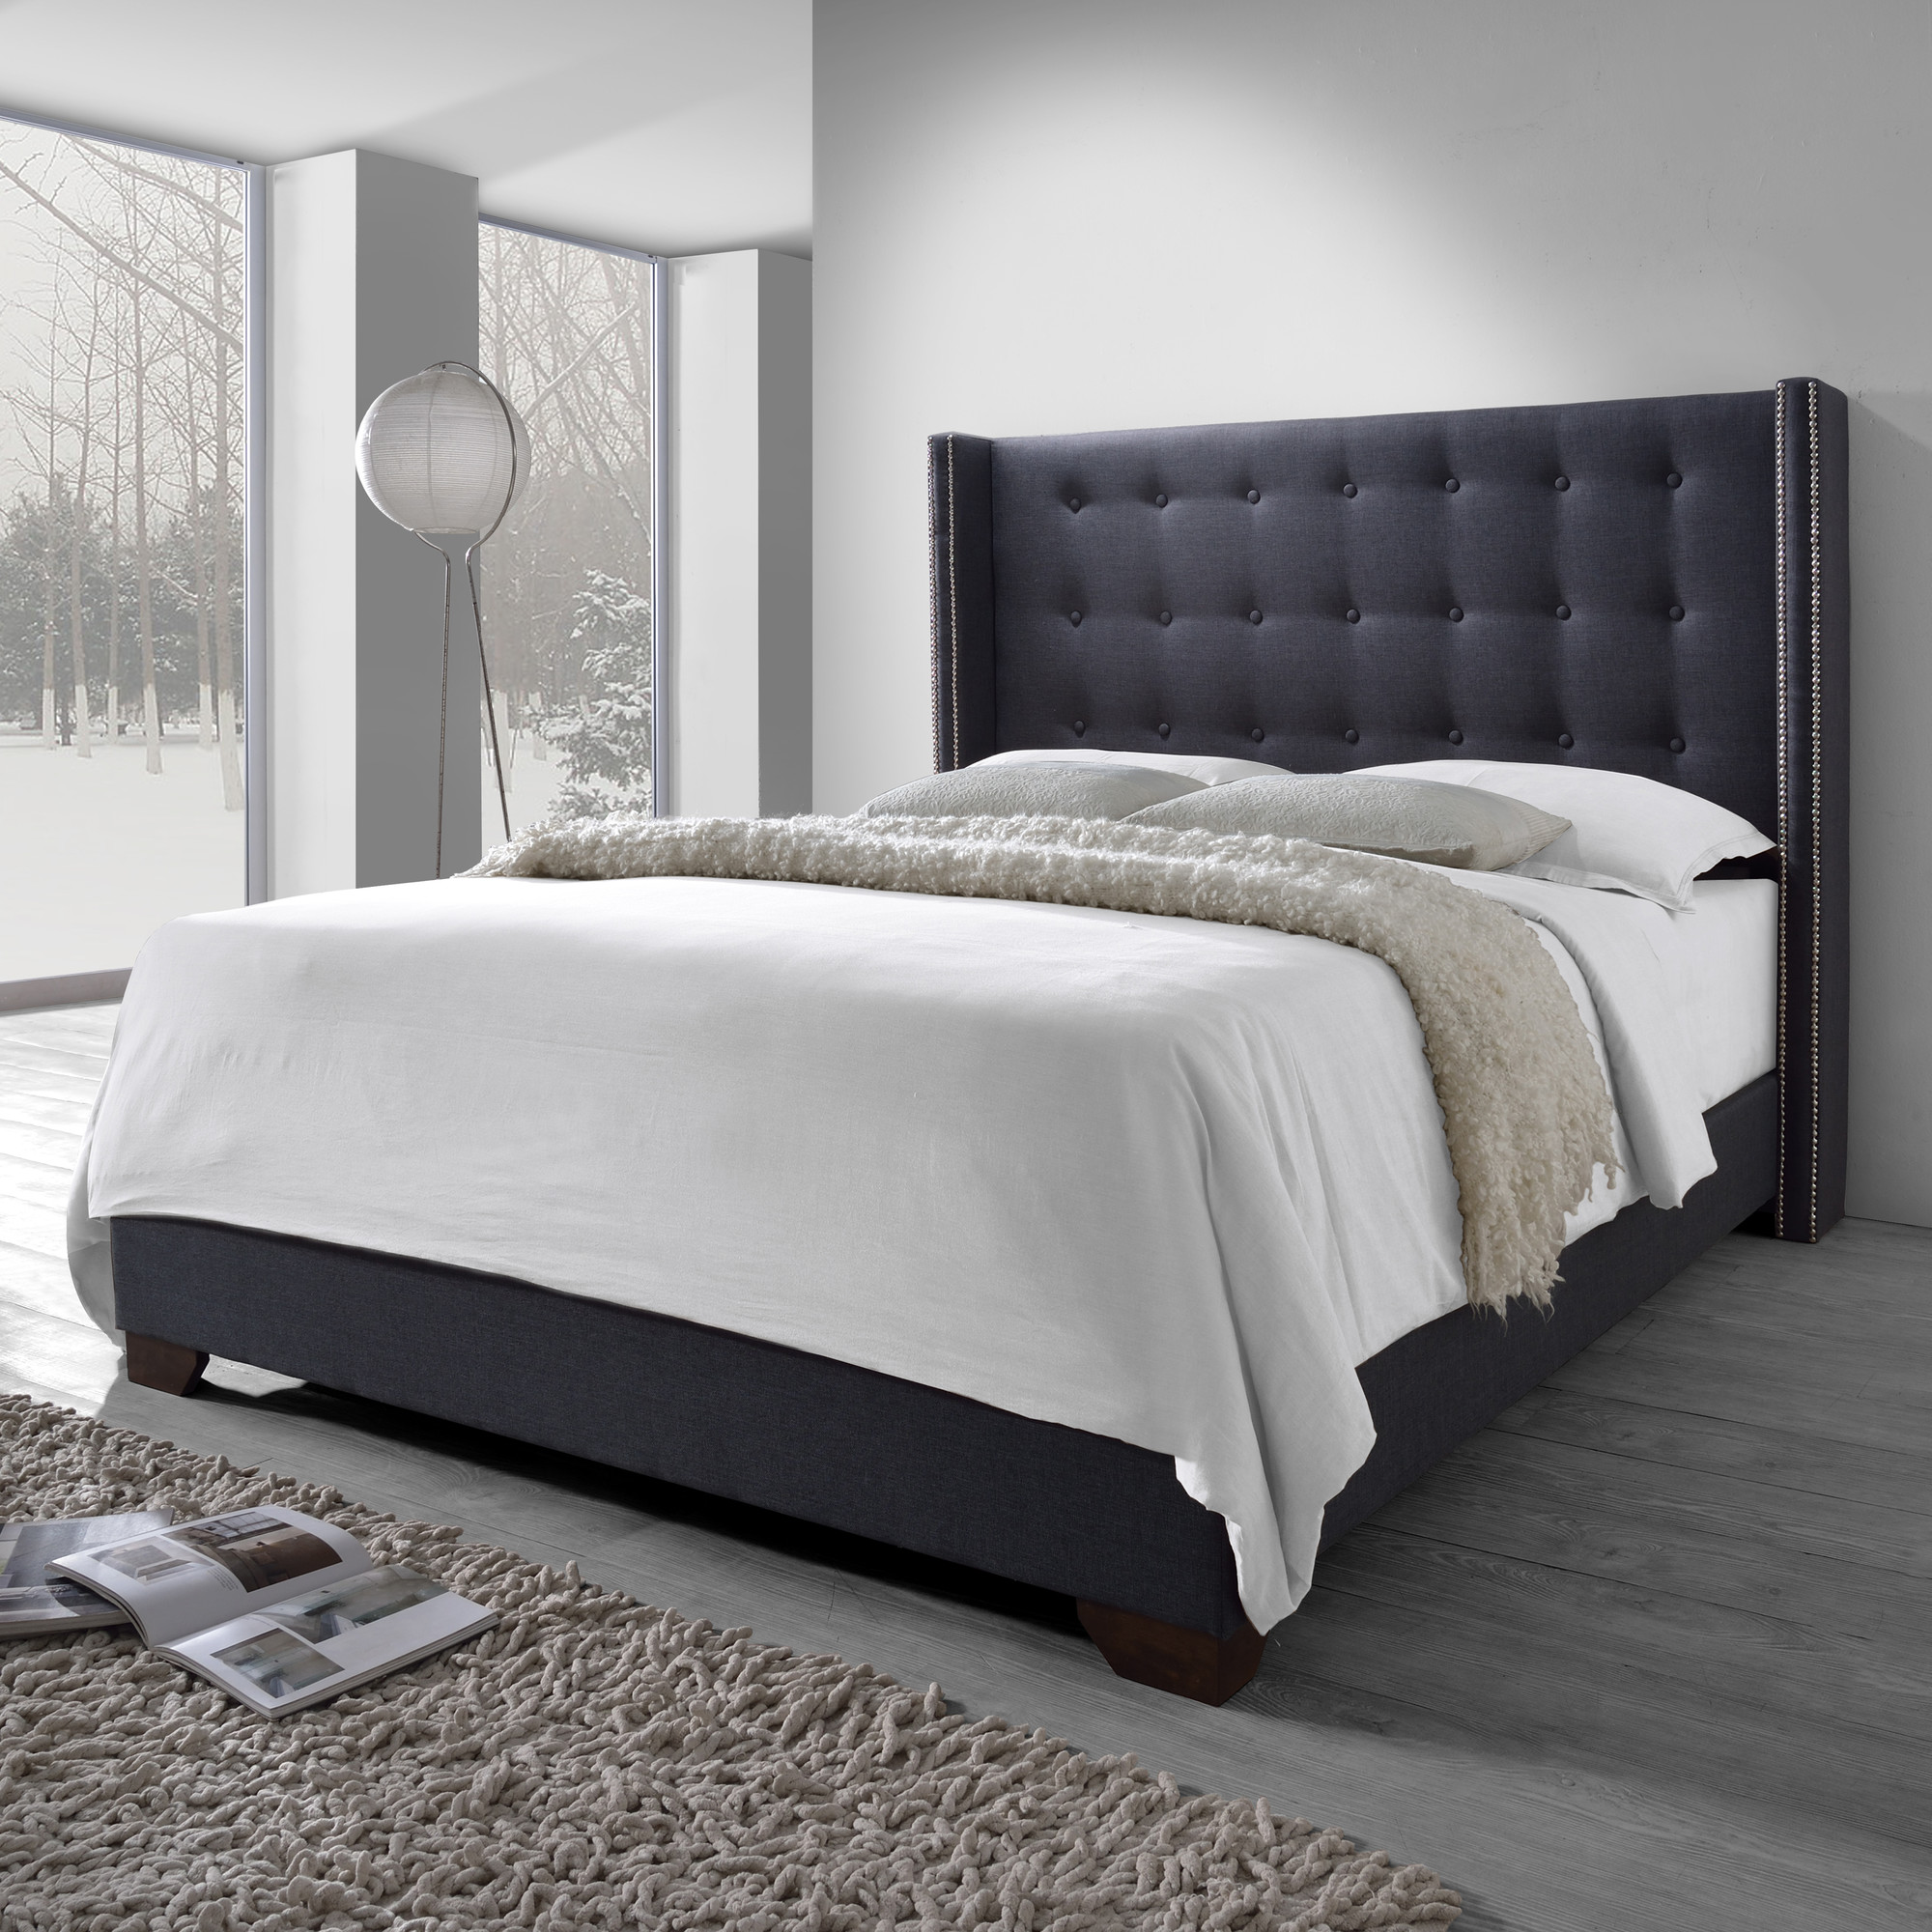 Gray - Upholstered Tufted Wingback Bed - 2 Day shipping - King  $699